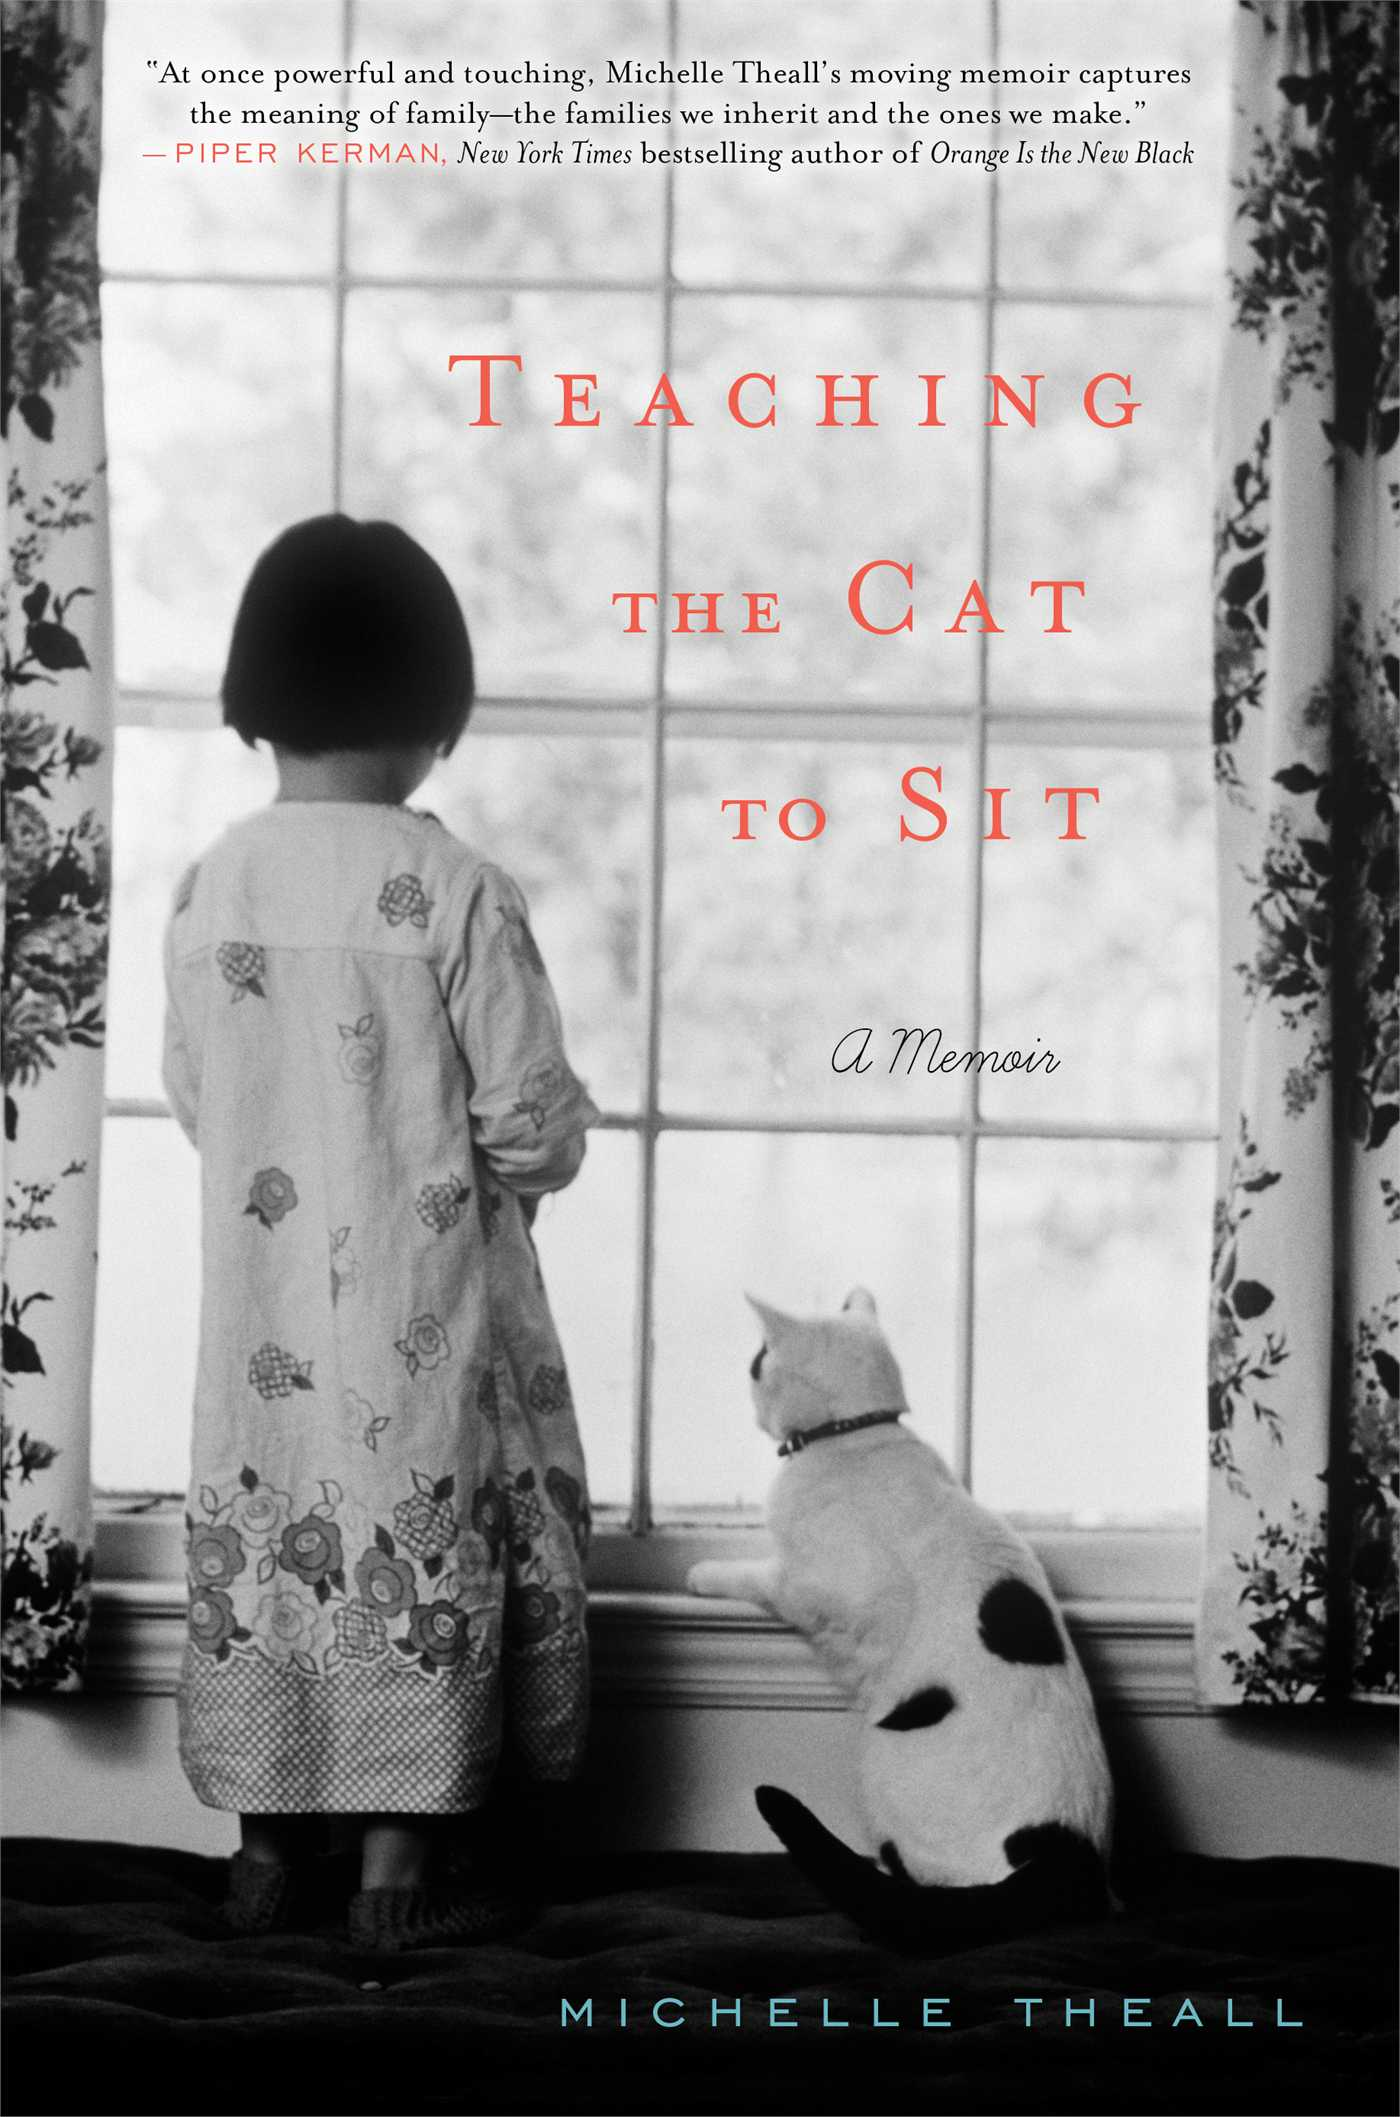 Teaching-the-cat-to-sit-9781451697292_hr